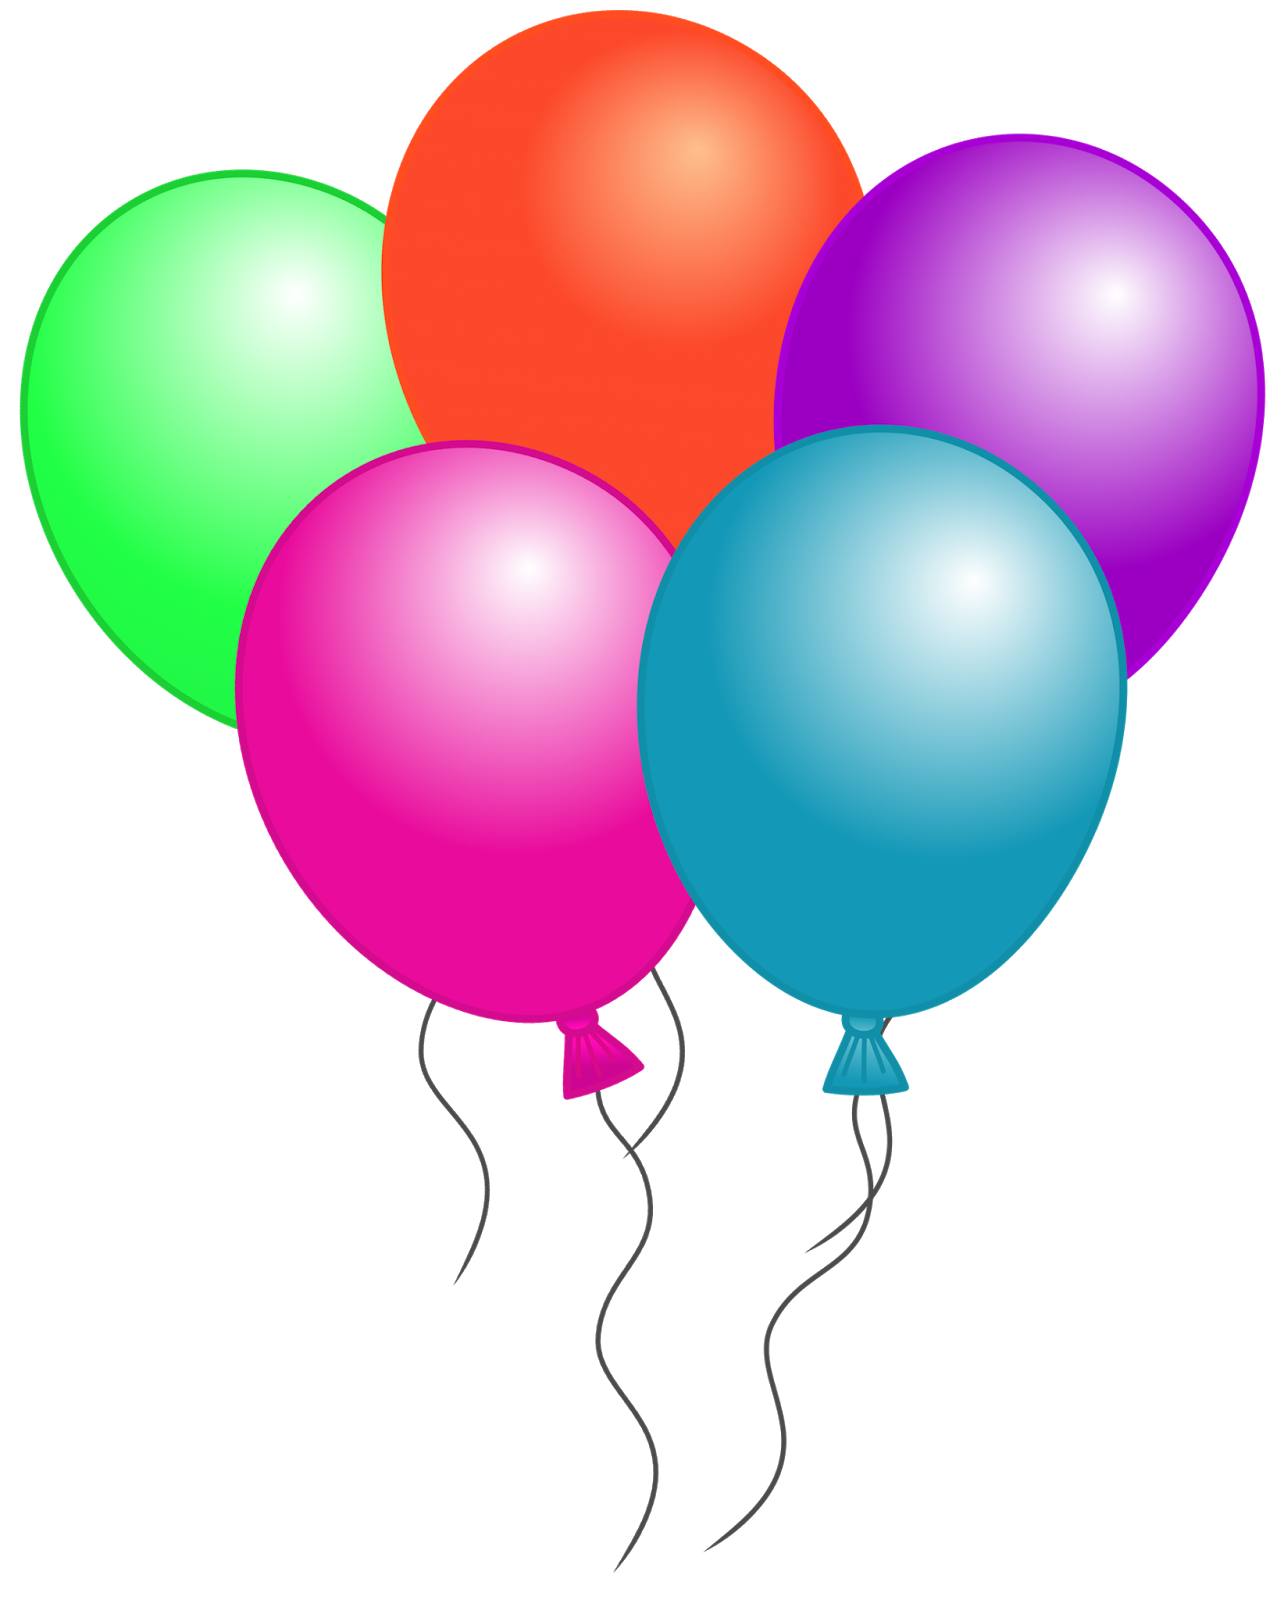 Balloon clipart #13, Download drawings